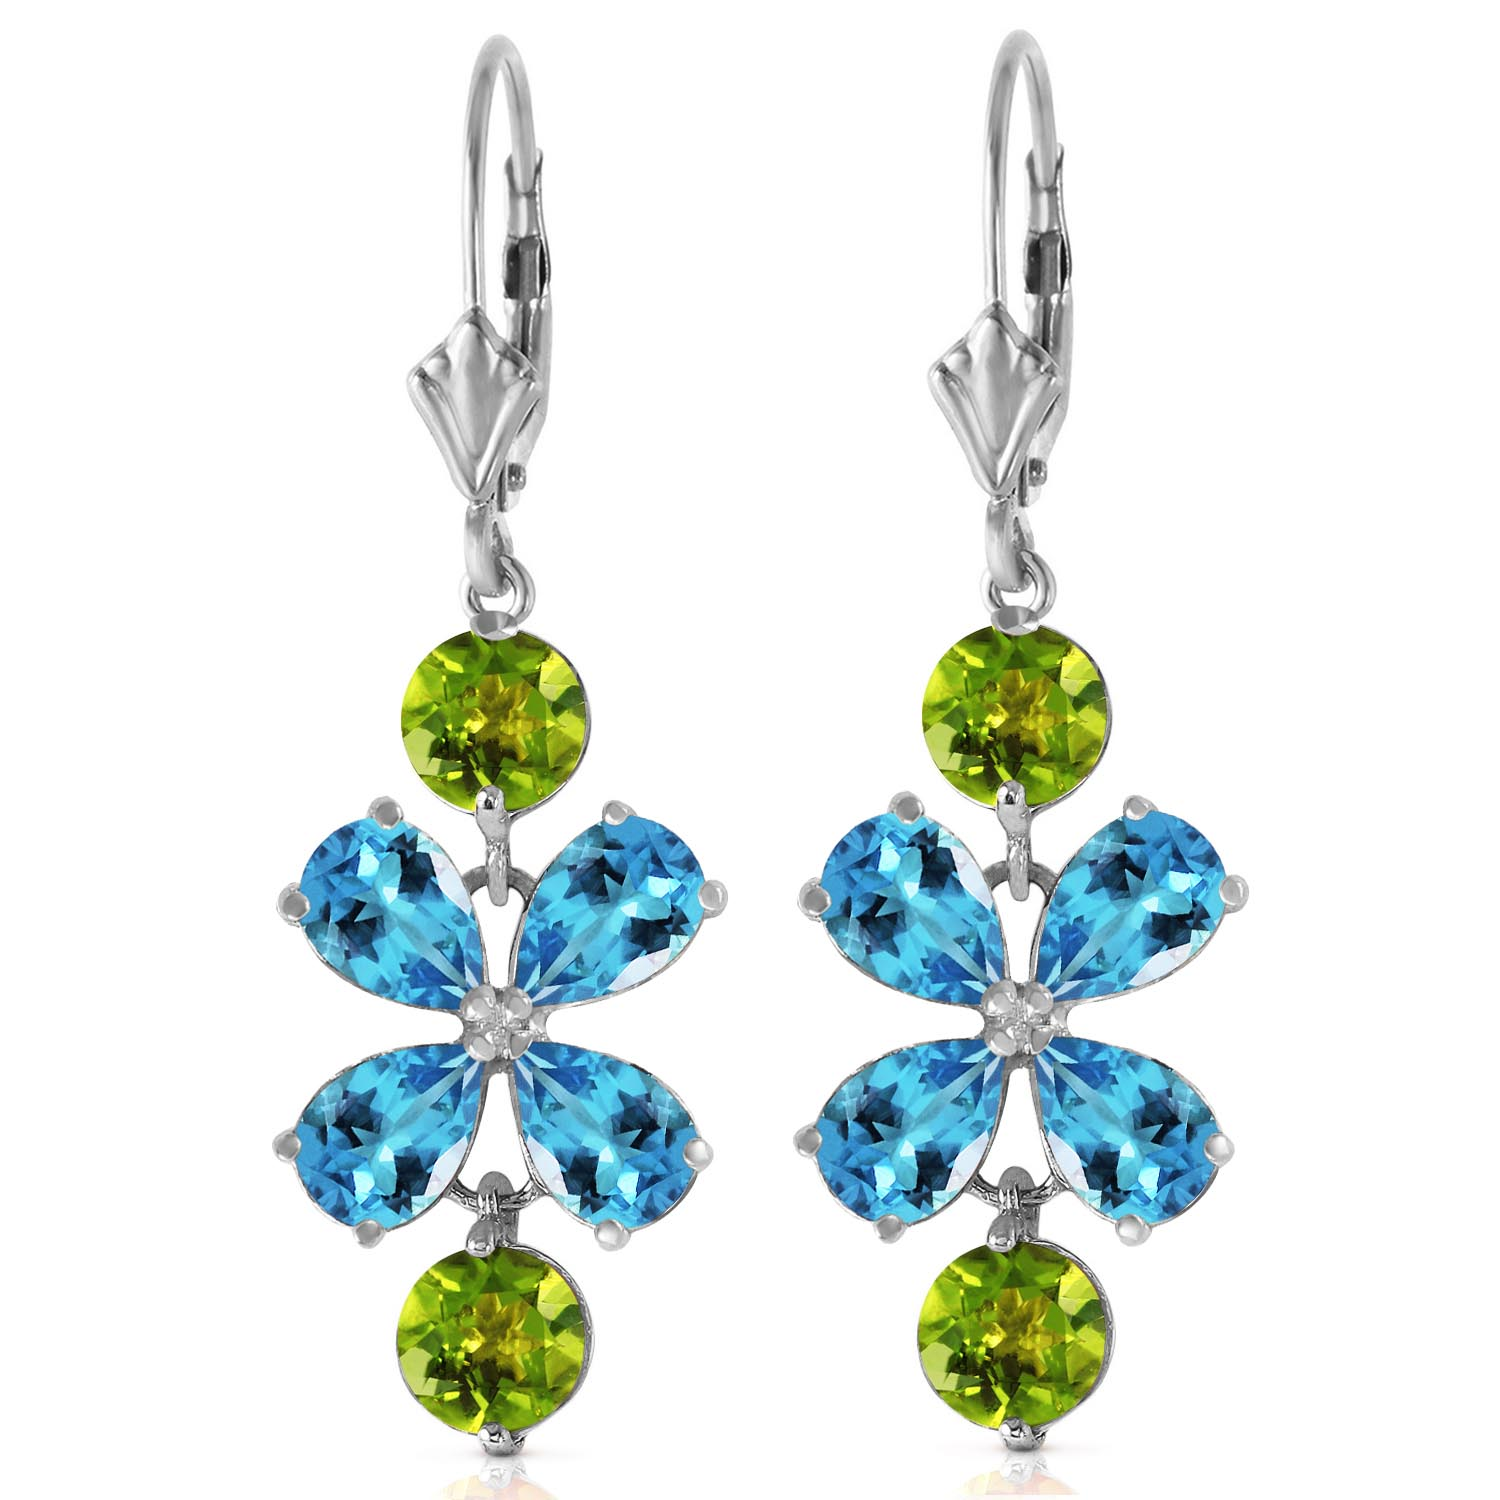 Blue Topaz and Peridot Blossom Drop Earrings 5.32ctw in 14K White Gold